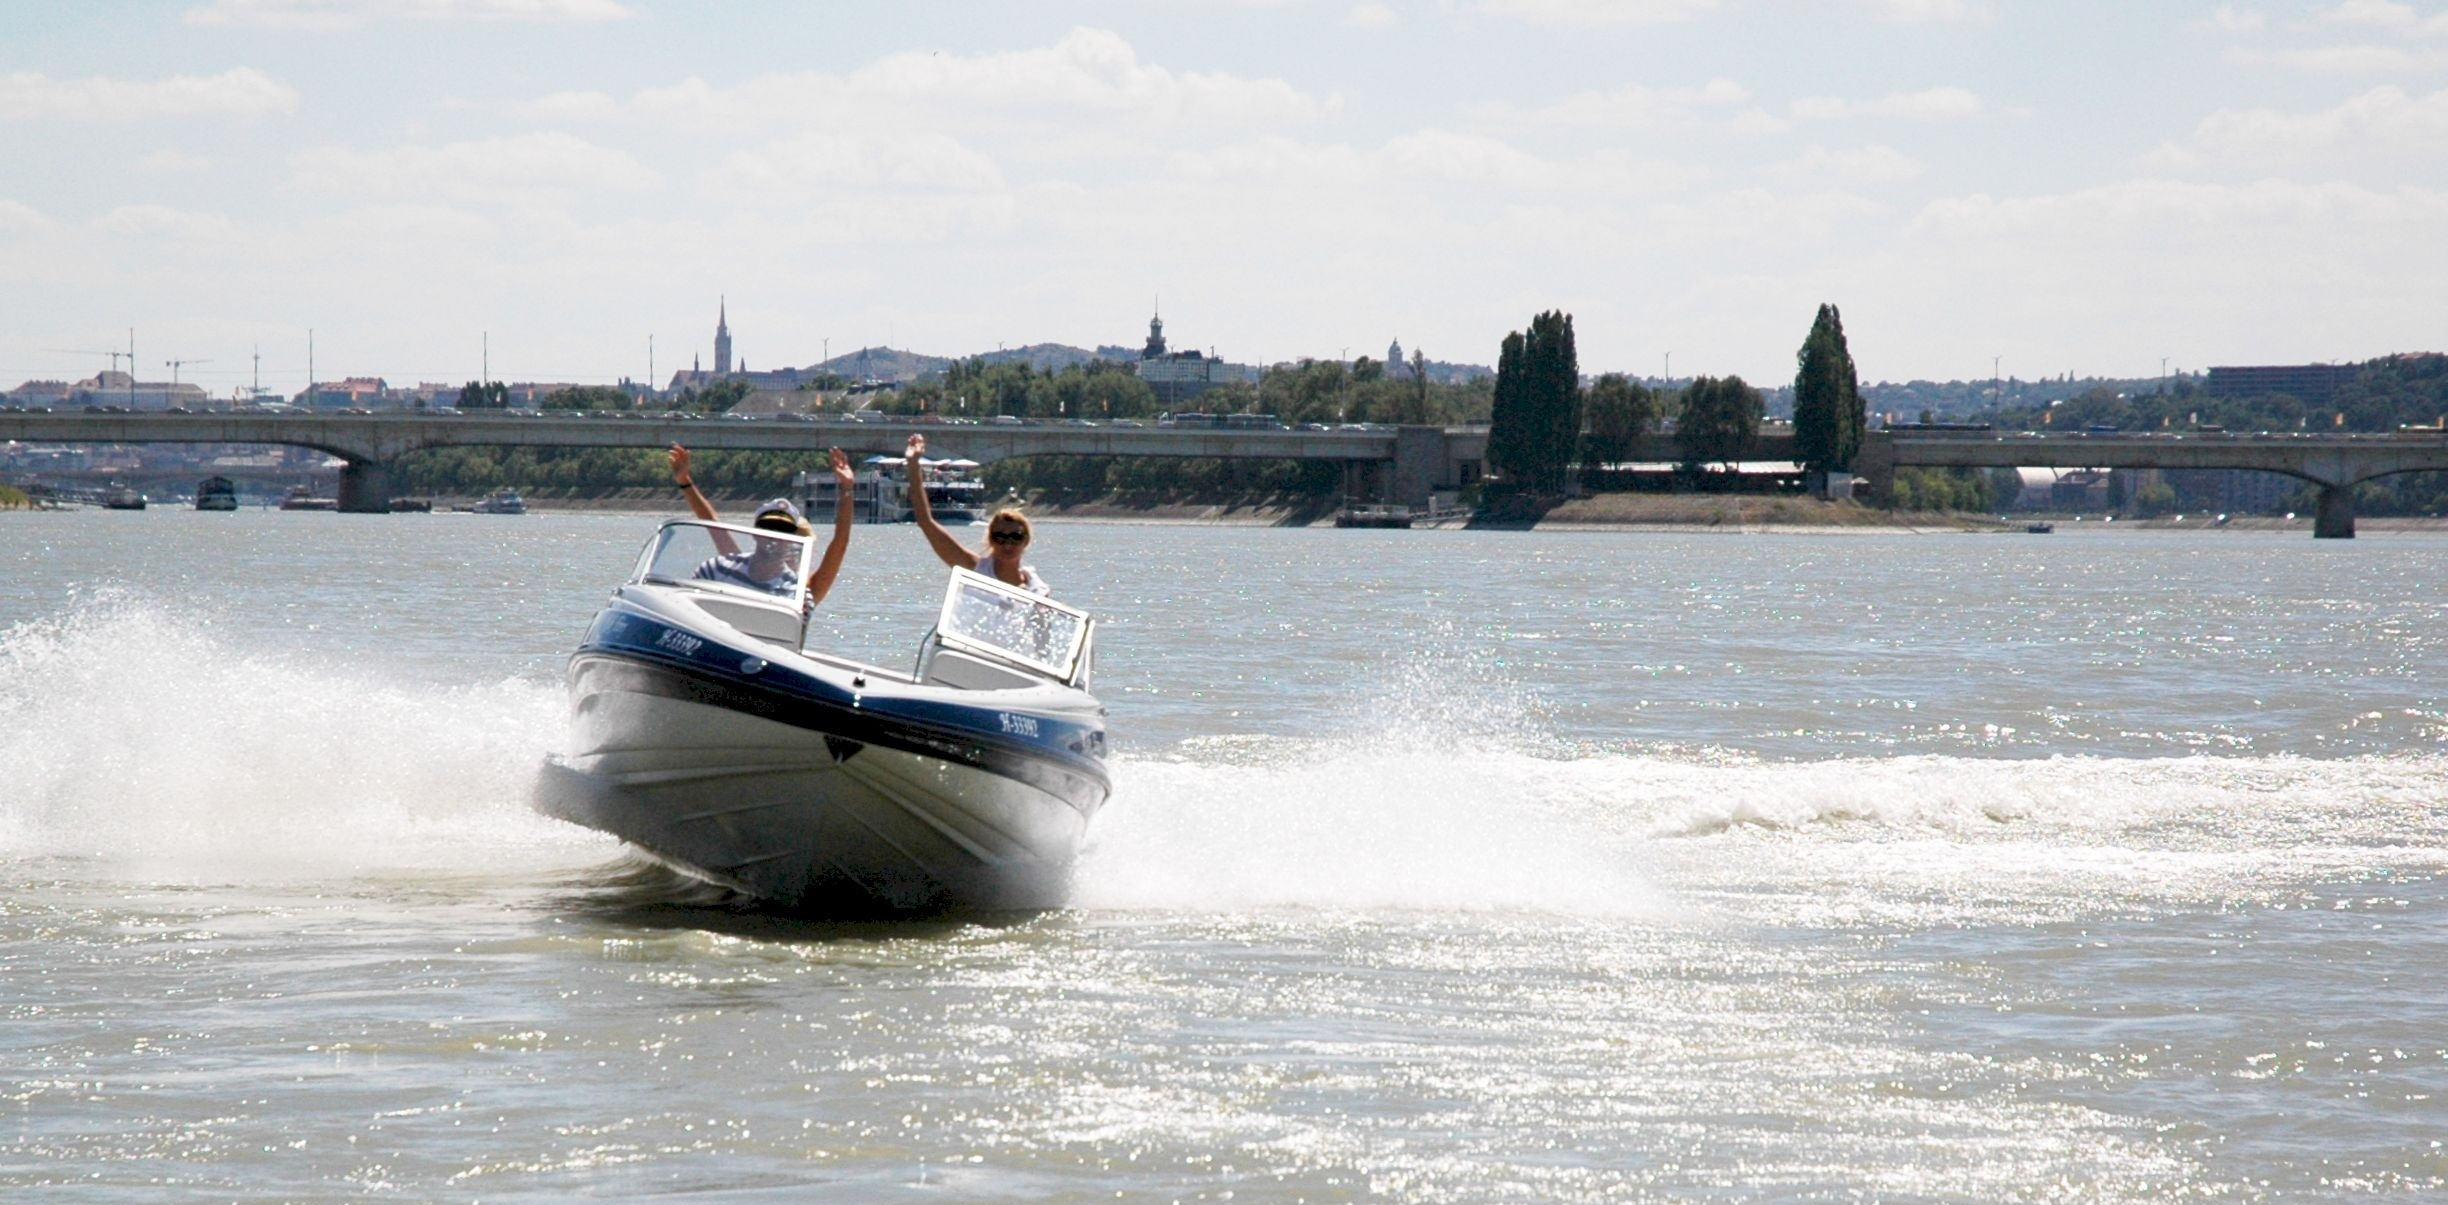 Sziget VIP Boat - brought to You by Budapest Boat Show